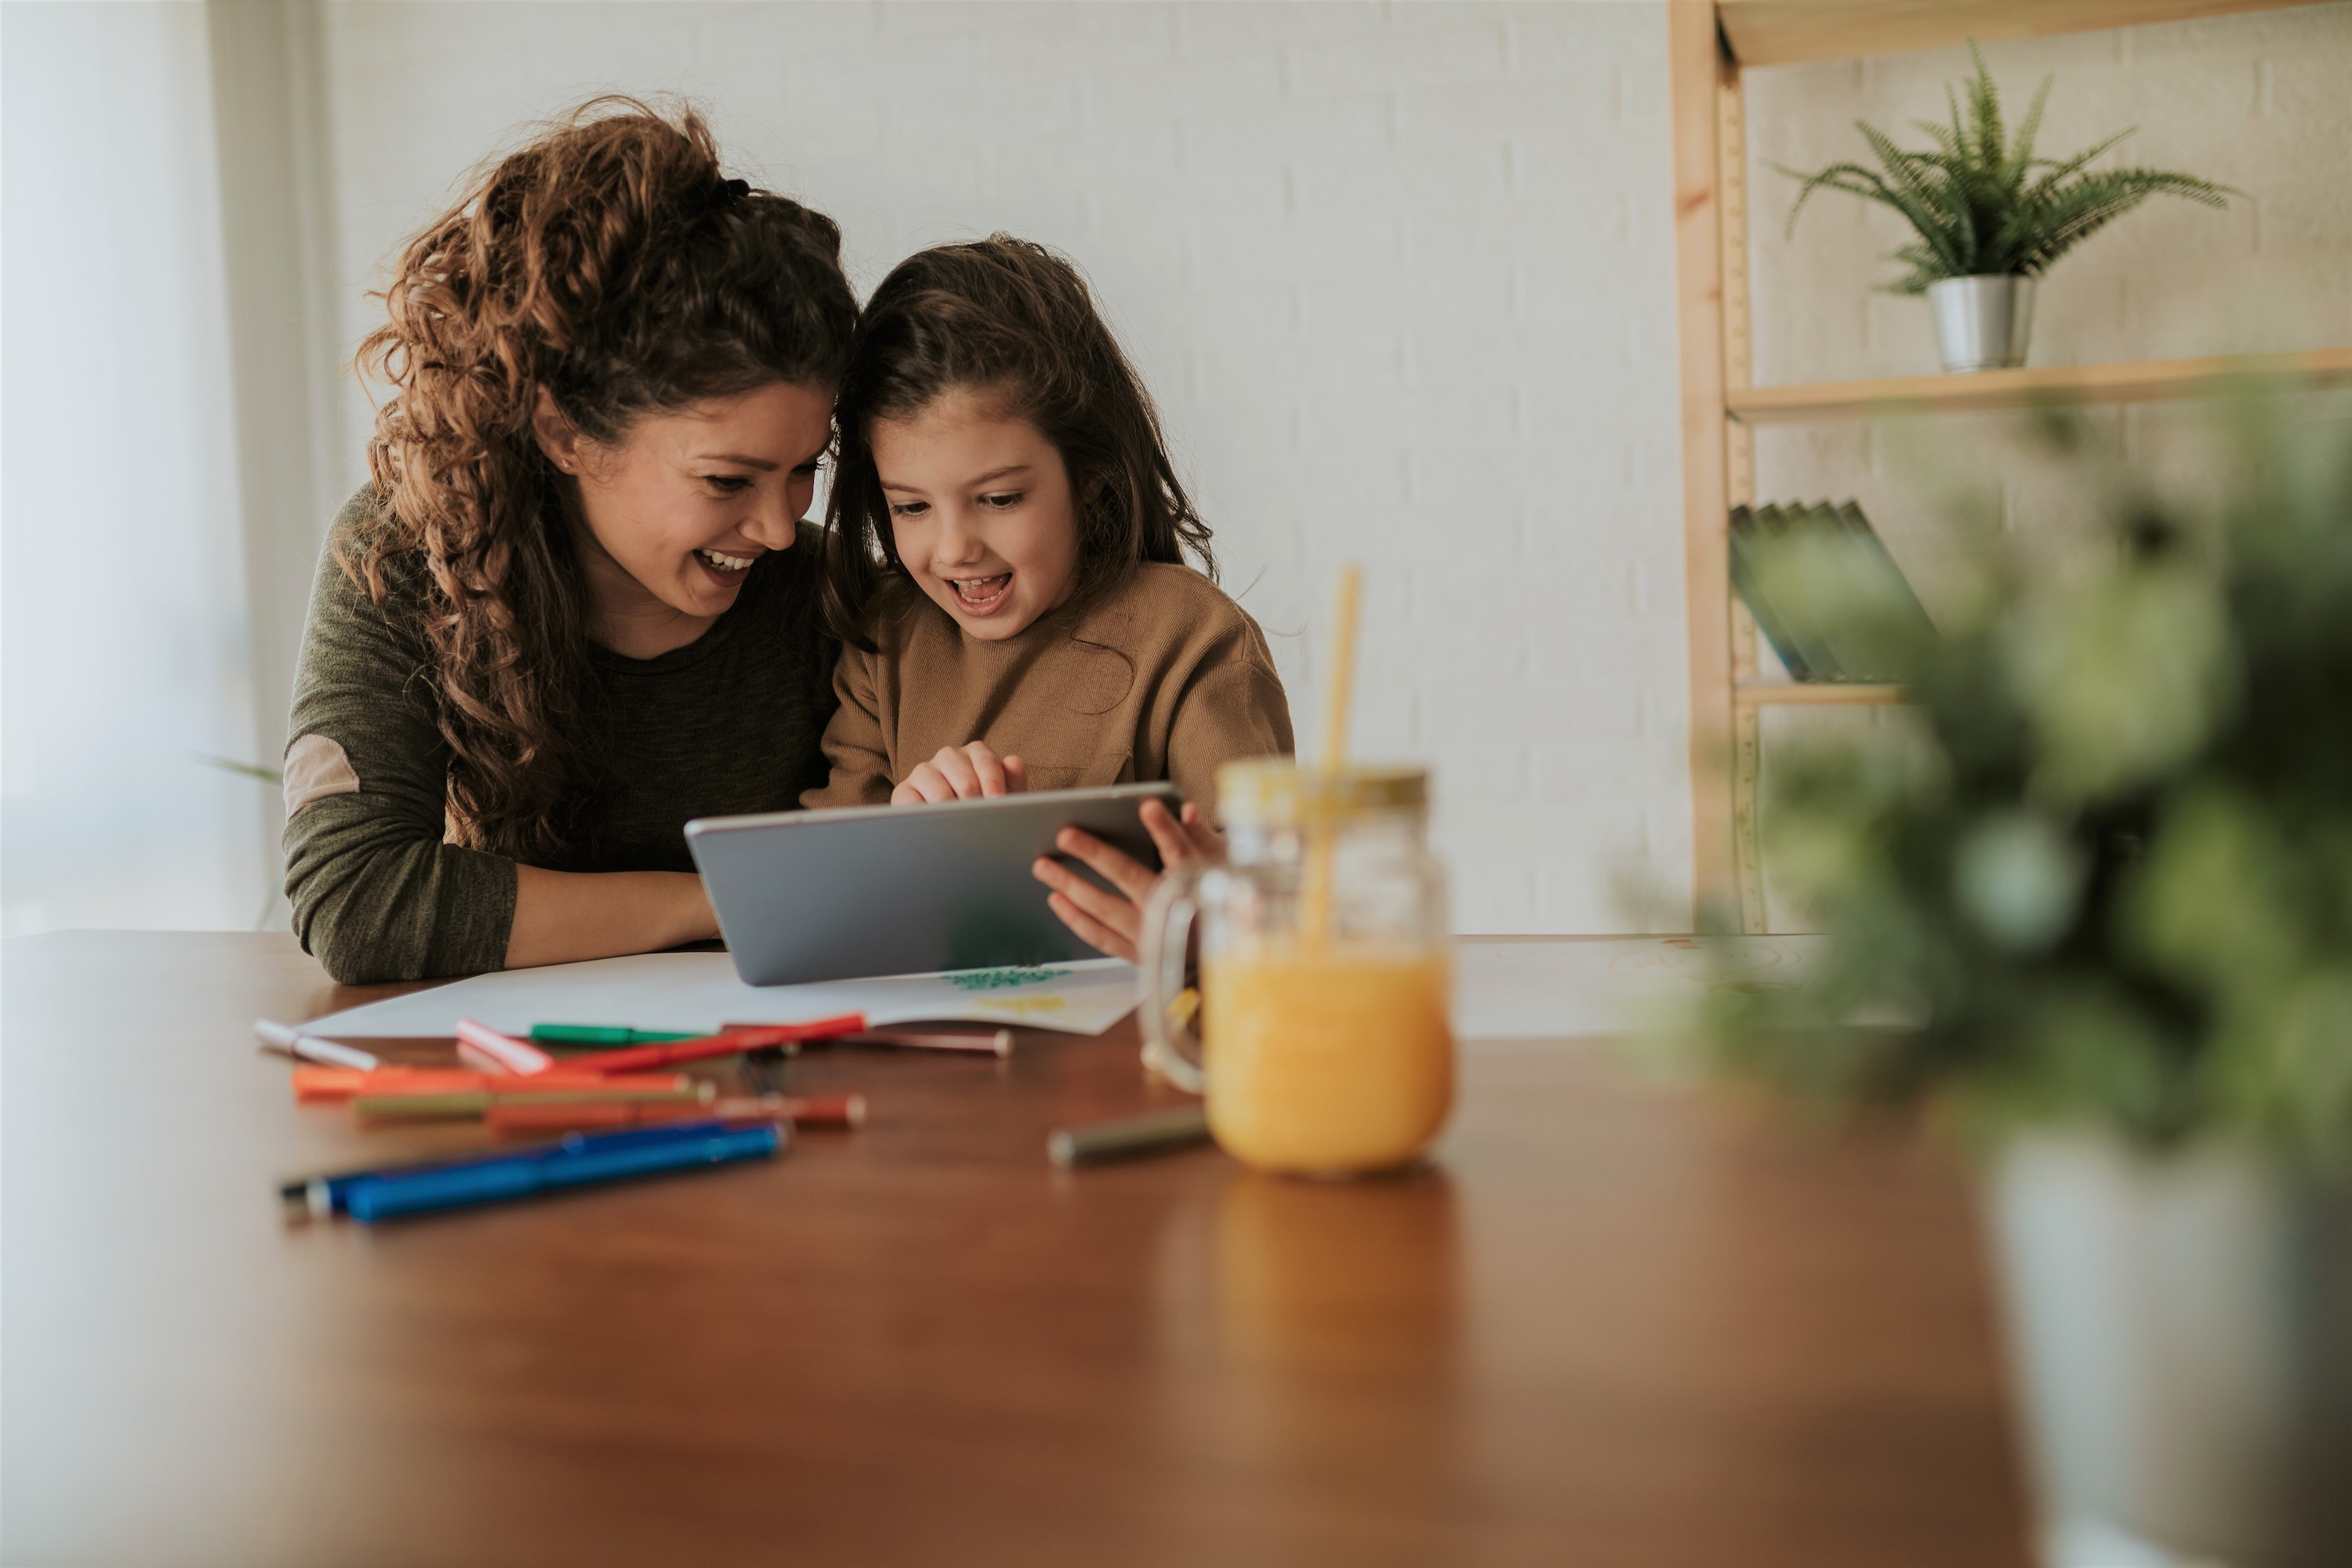 Your Coronavirus Educational Activity Toolbox: 10 Tips to Help Parents Weather School Closing